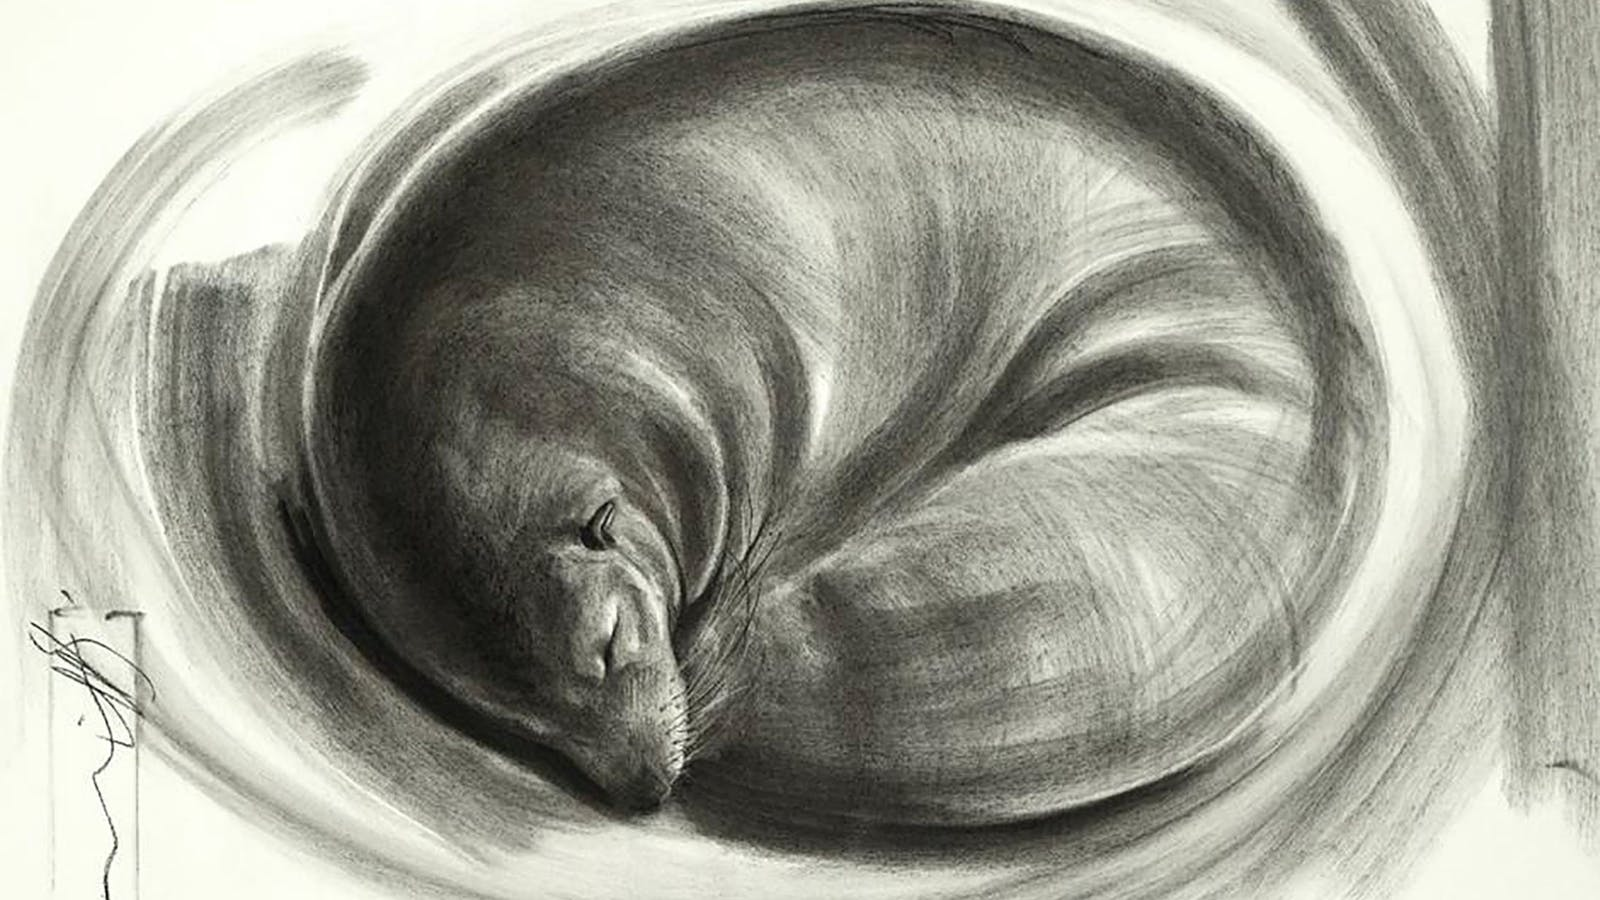 'Meditation - New Zealand fur seal' = Charcoal on Arches paper, Image size 30 x 45cm.